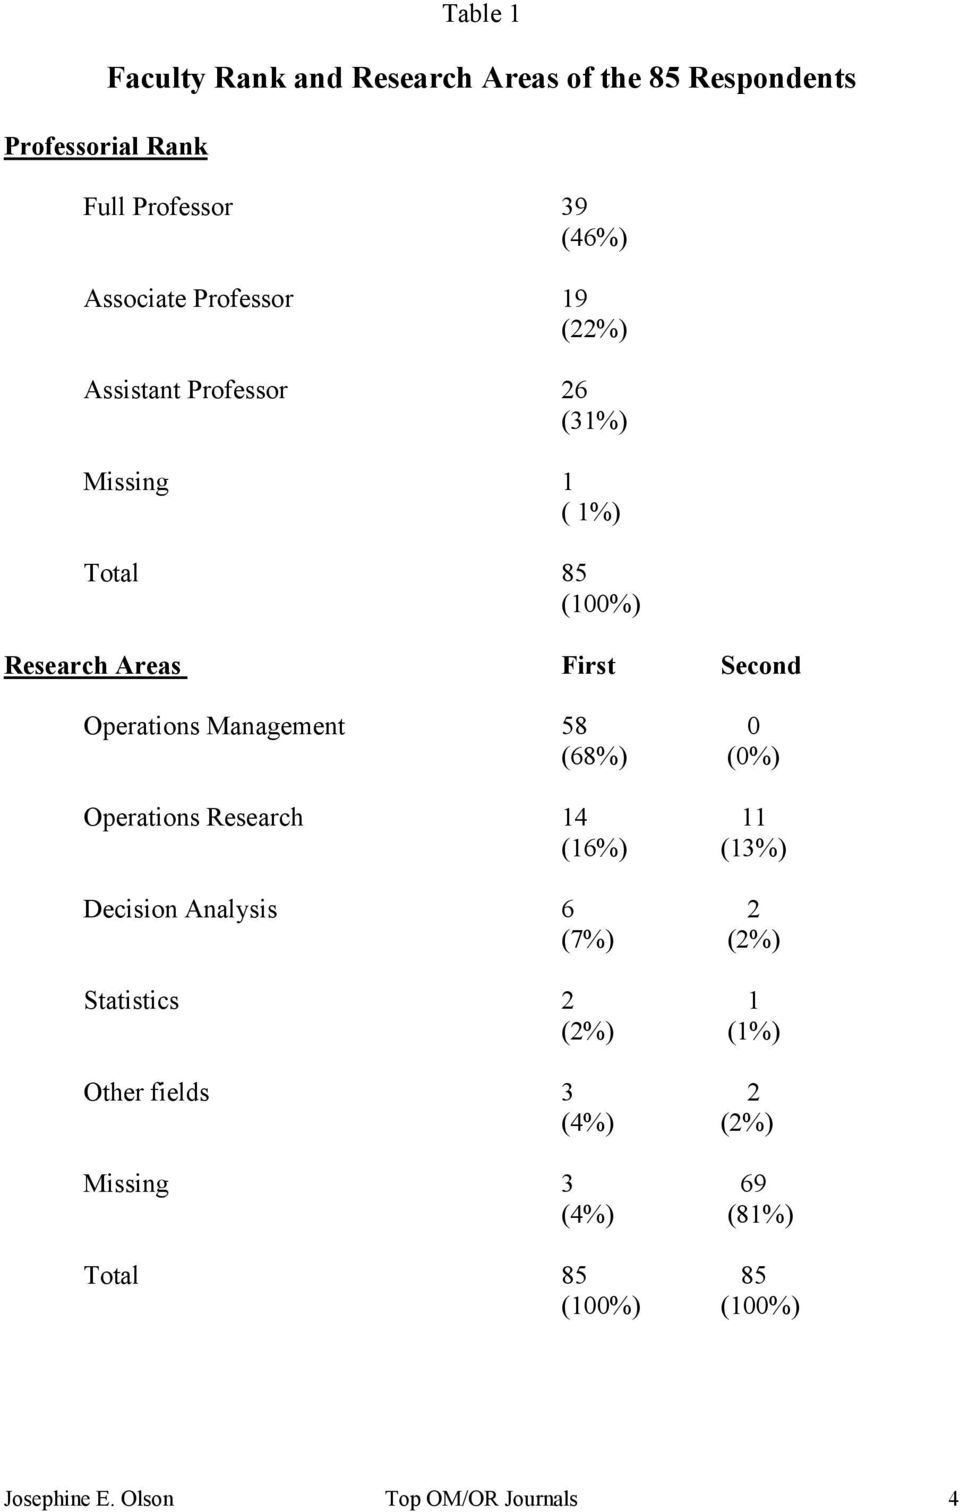 Operations Management 58 0 (68%) (0%) Operations Research 14 11 (16%) (13%) Decision Analysis 6 2 (7%) (2%)